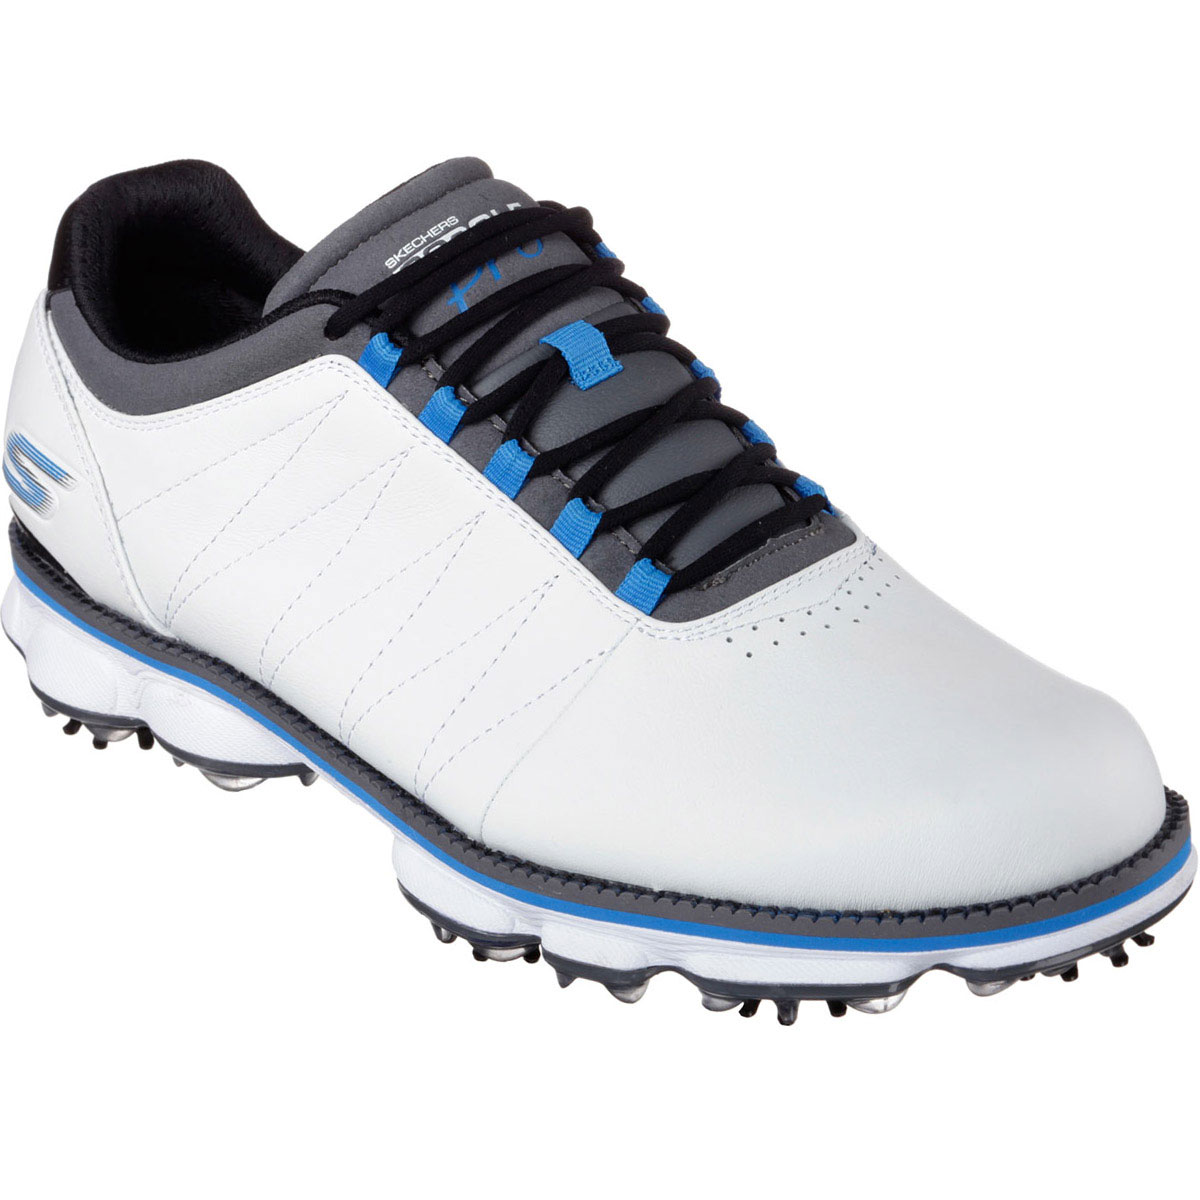 Matt Kuchar Golf Shoes